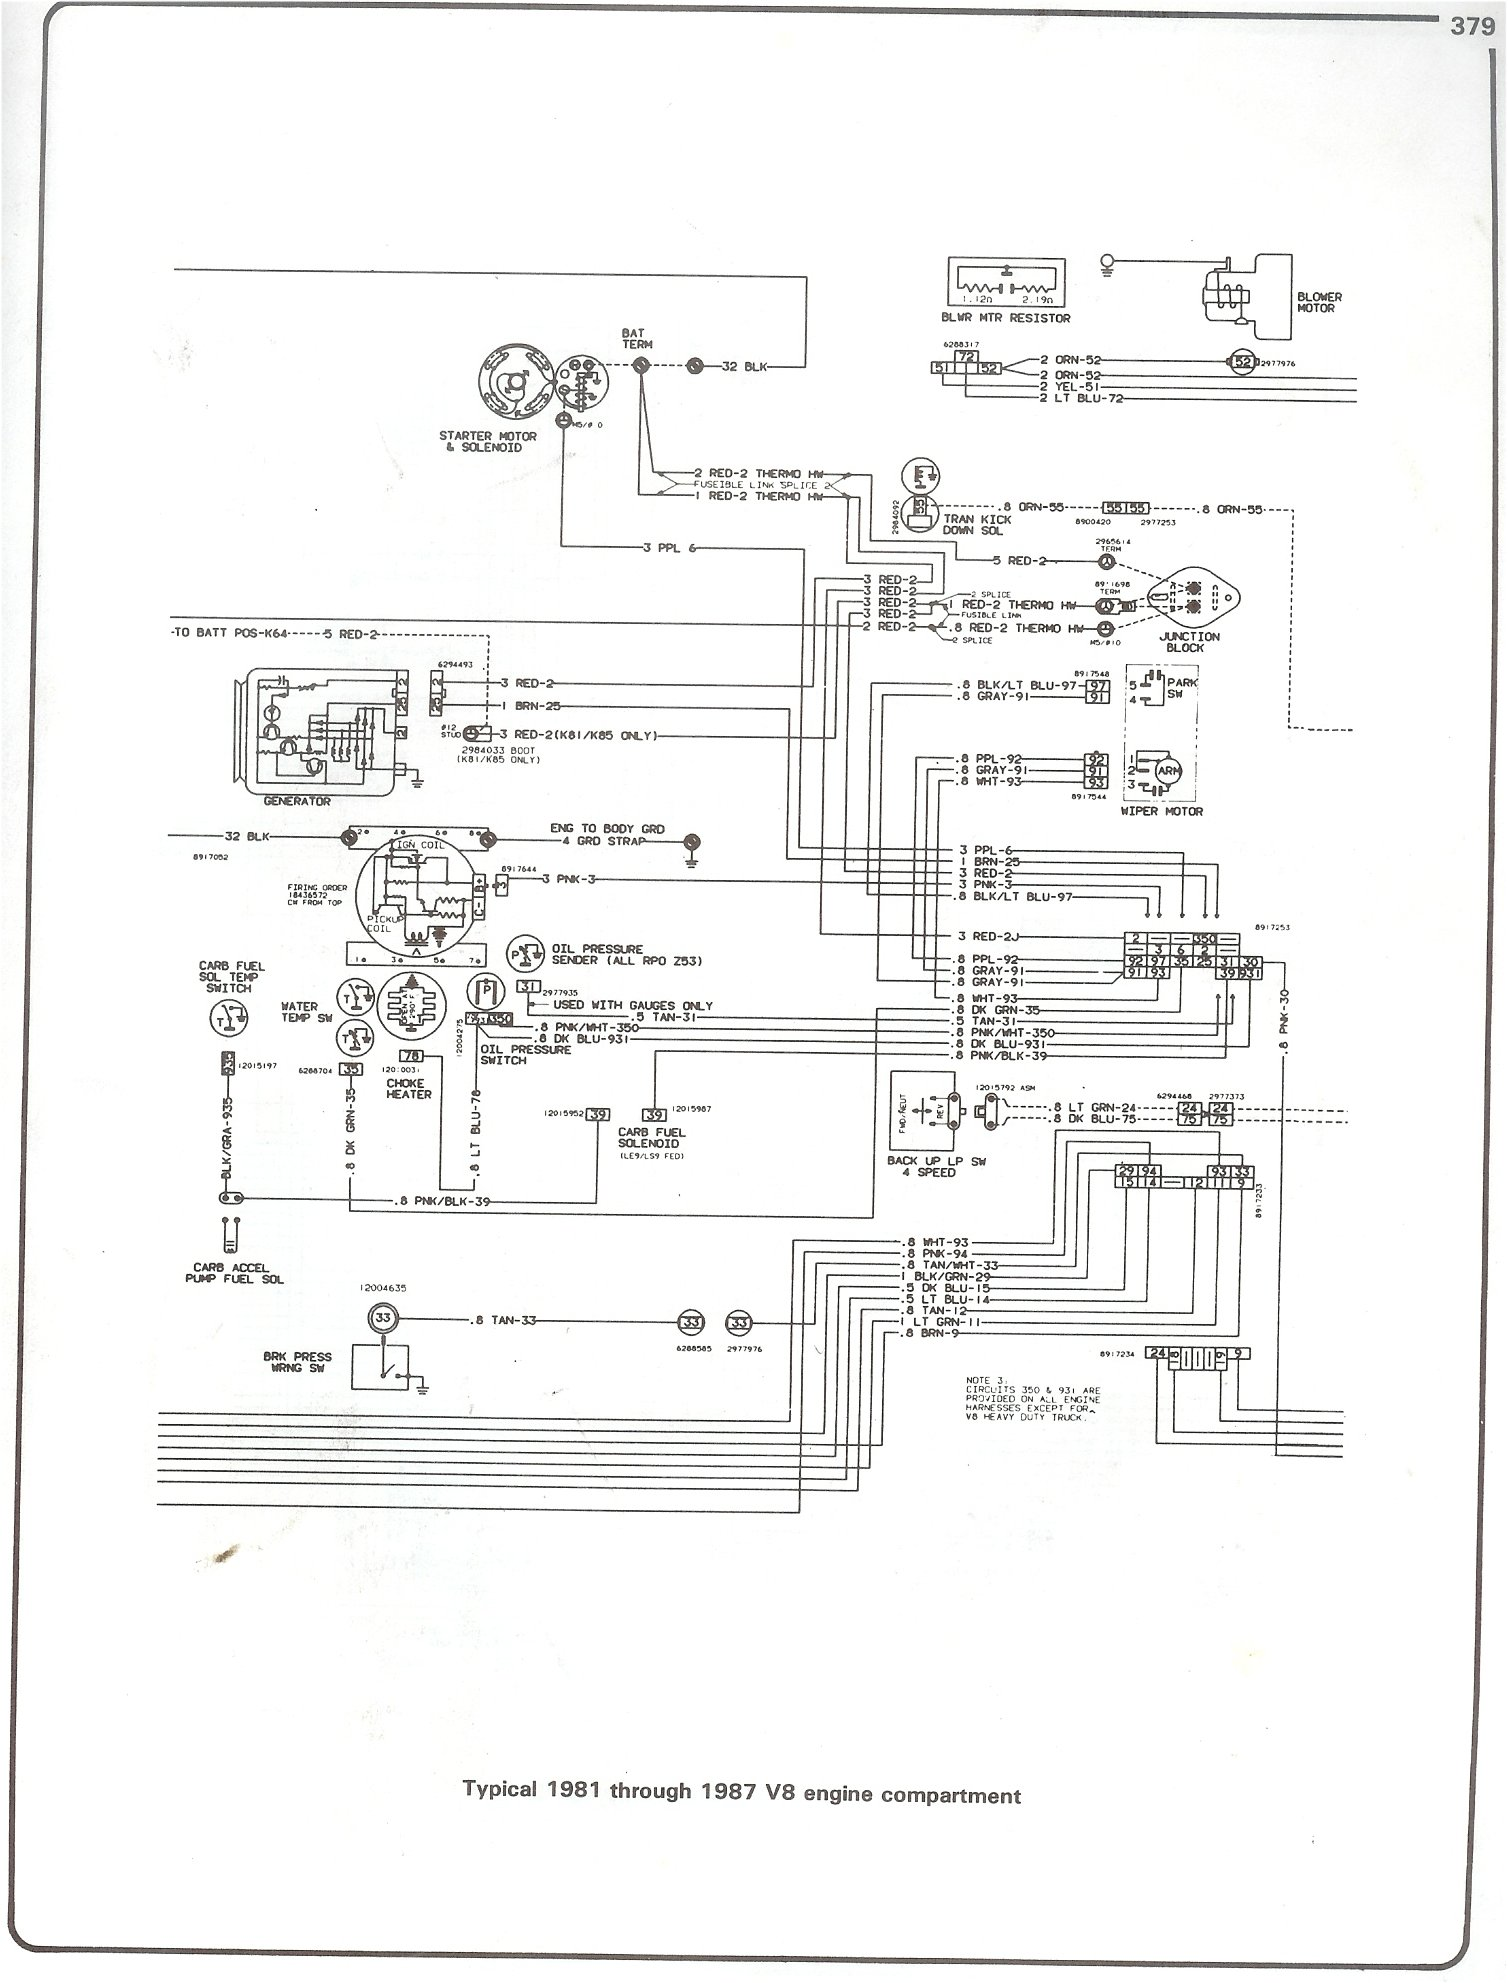 complete 73 87 wiring diagrams rh forum 73 87chevytrucks com 1986 Chevy Headlight Wiring Diagram 1959 Chevy Impala Wiring Diagram